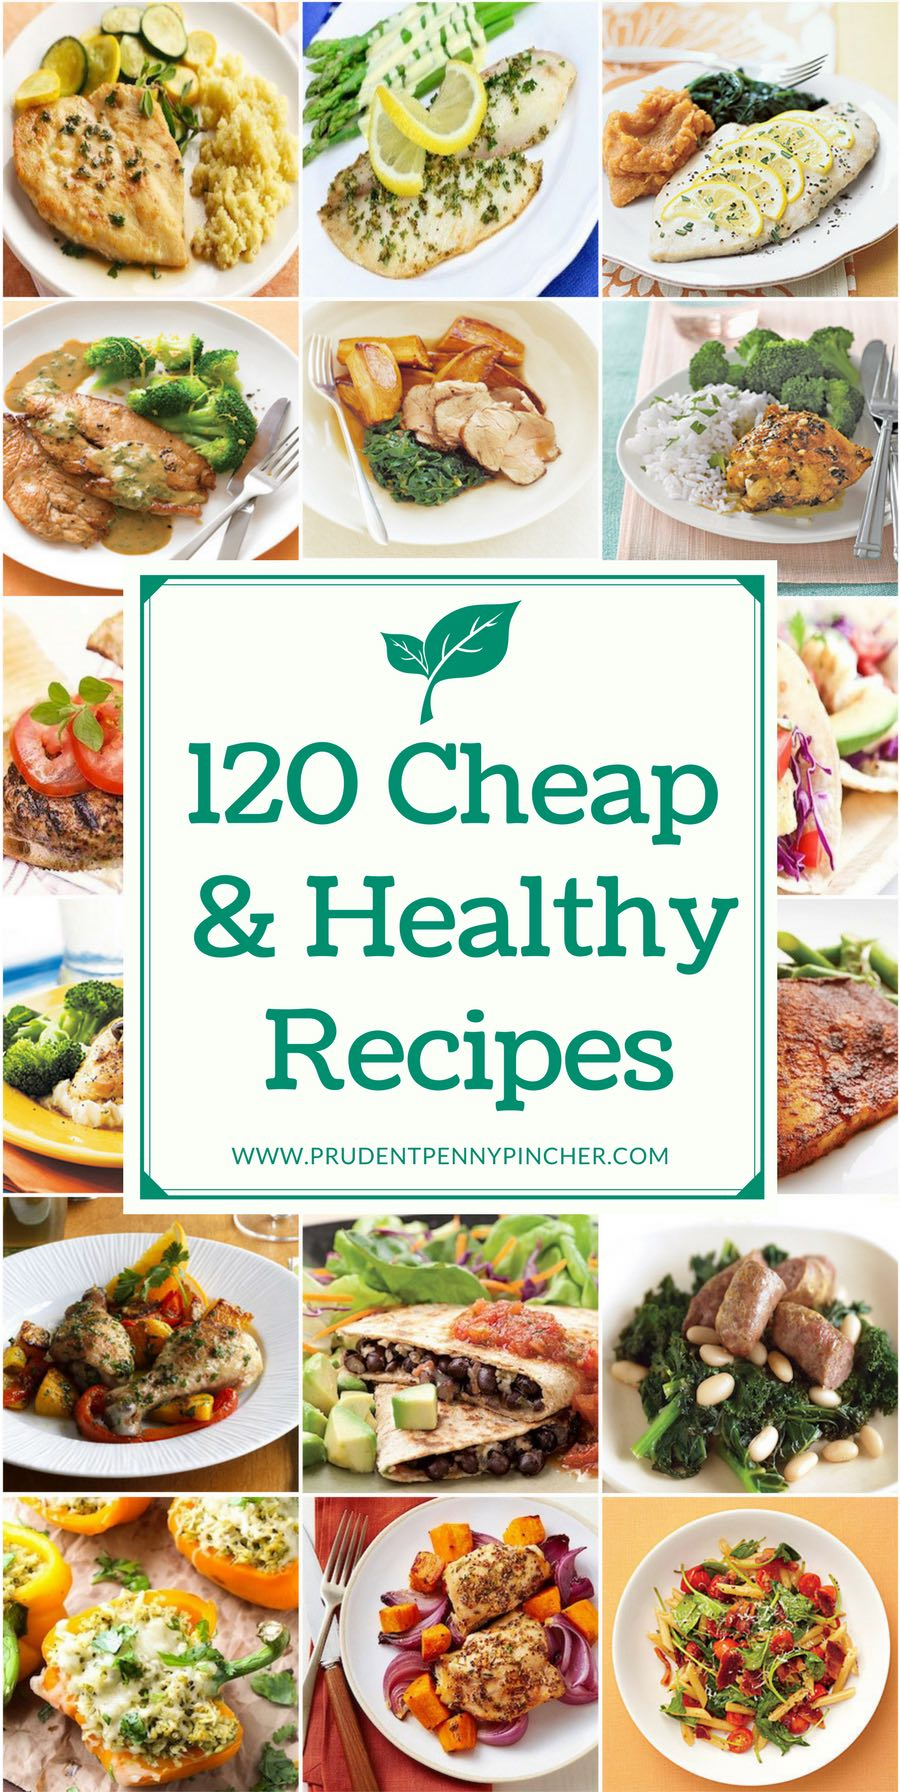 120 Cheap and Healthy Recipes